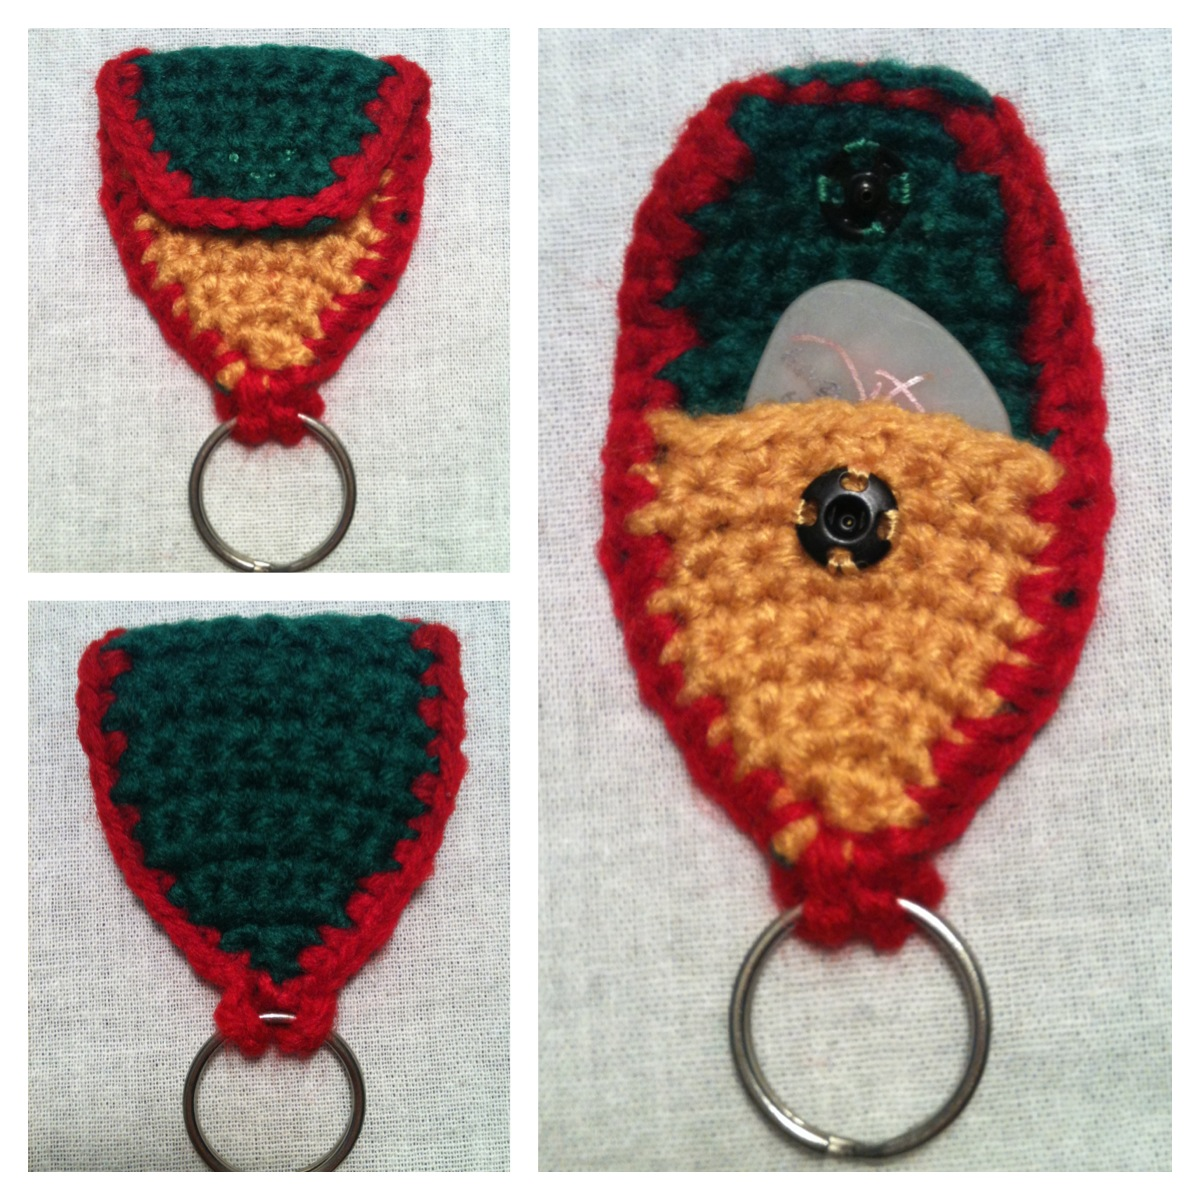 Crochet Patterns Keychain : free crochet pattern guitar pick holder keychain well today is the day ...